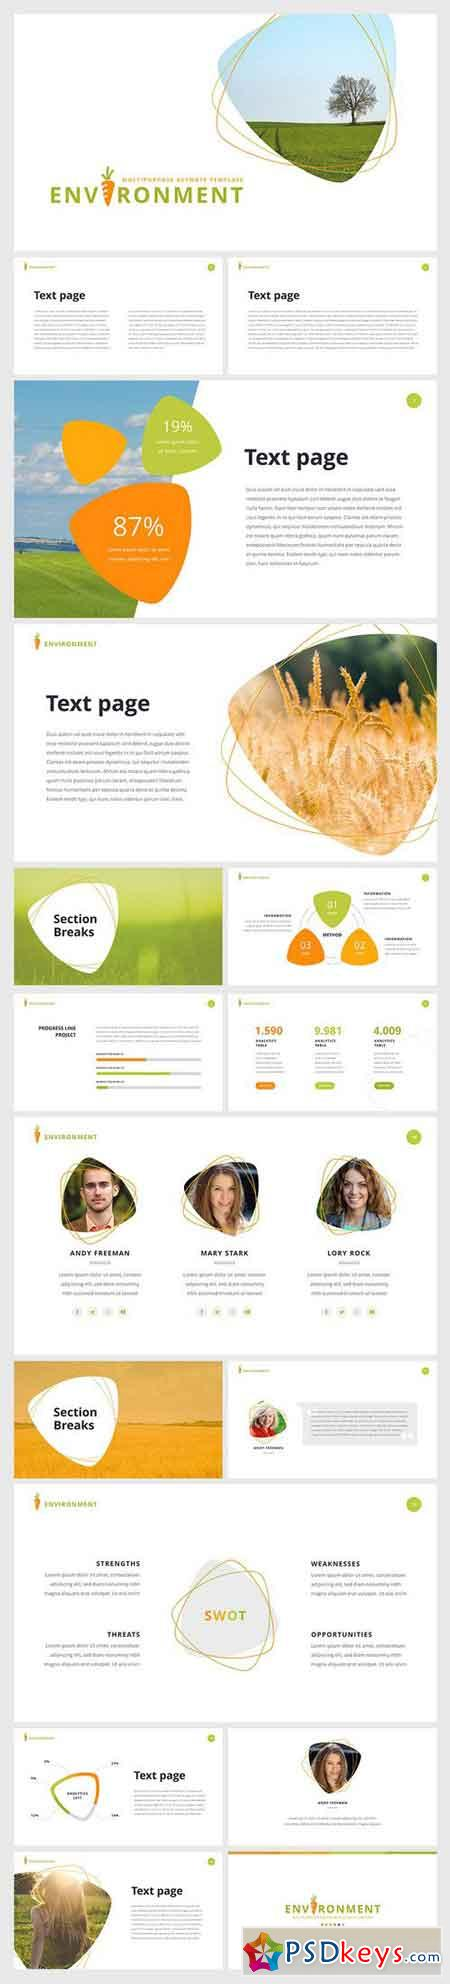 environment powerpoint template 187 free download photoshop